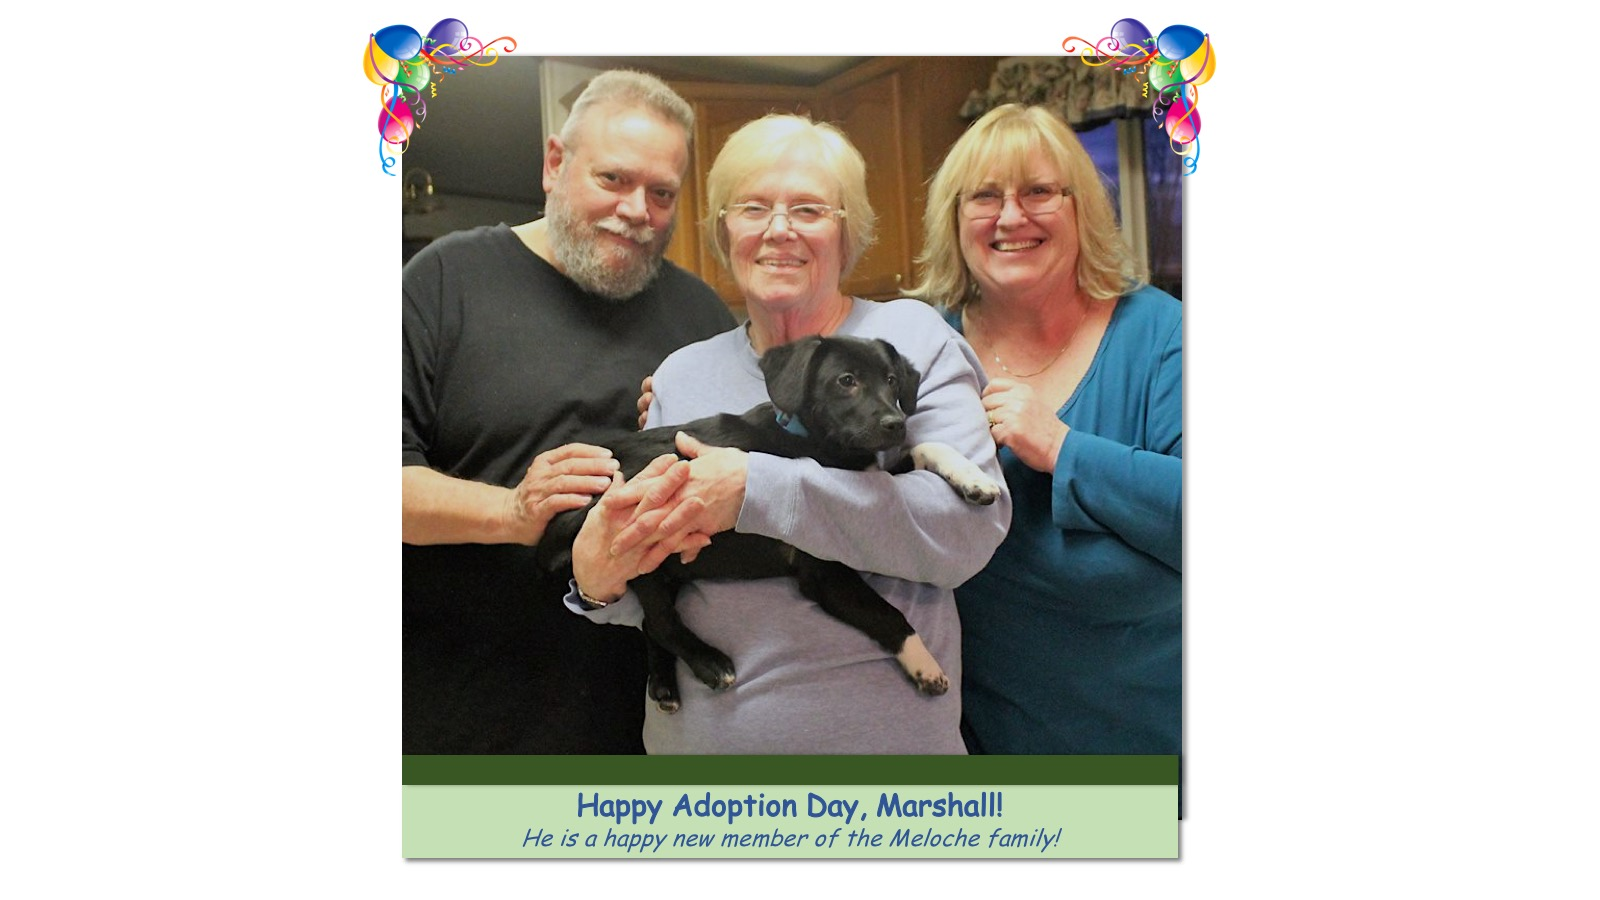 Marshall_Adoption_Photo71638.jpg